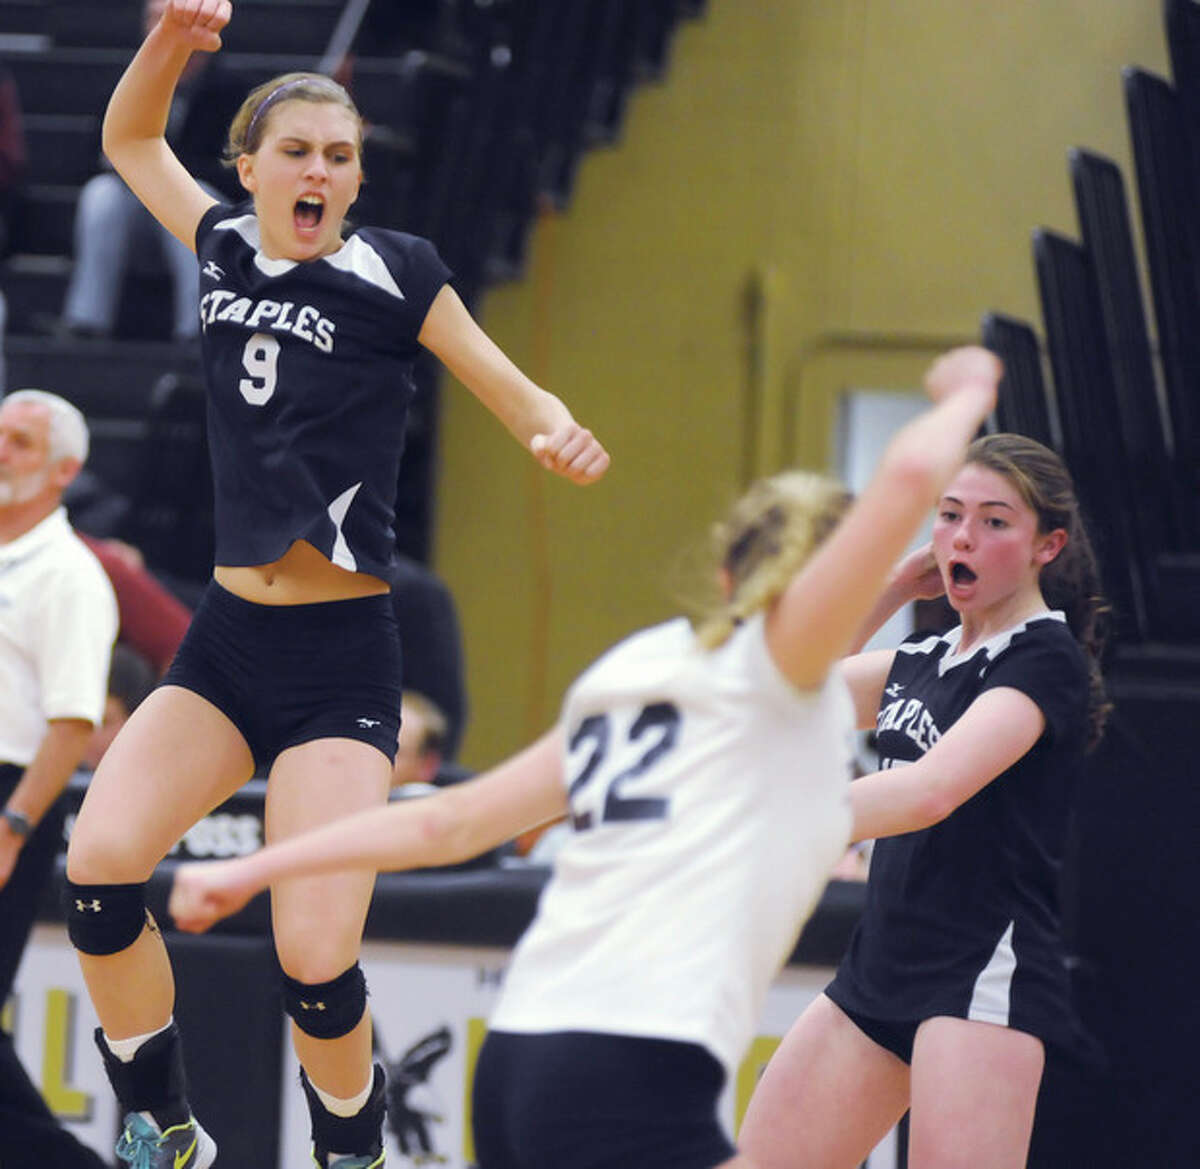 Hour photo/John Nash Staples volleyball players, from left, Lauren Mushro (9), Valerie Kirsch (22) and Ariana Sherman celebrate a point in the clinching set of Thursday's 3-1 win over Greenwich in a CIAC Class LL semifinal in Trumbull.